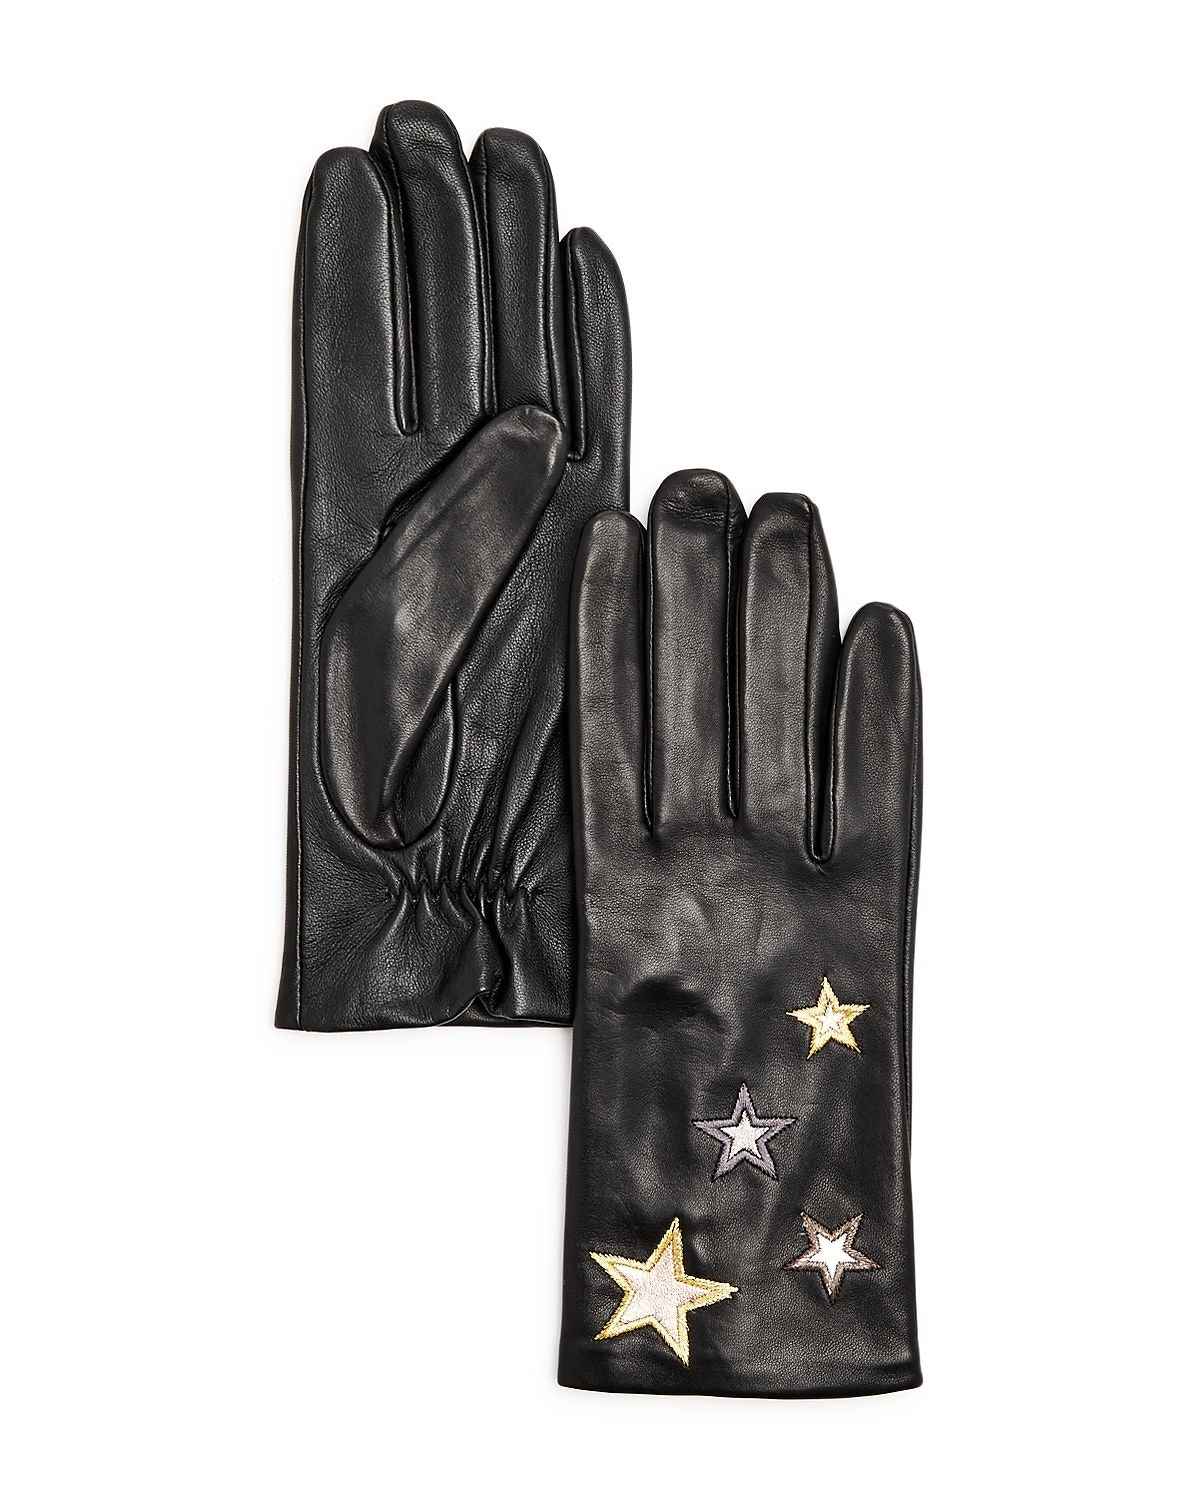 Aqua Star-Embroidered Leather Tech Gloves